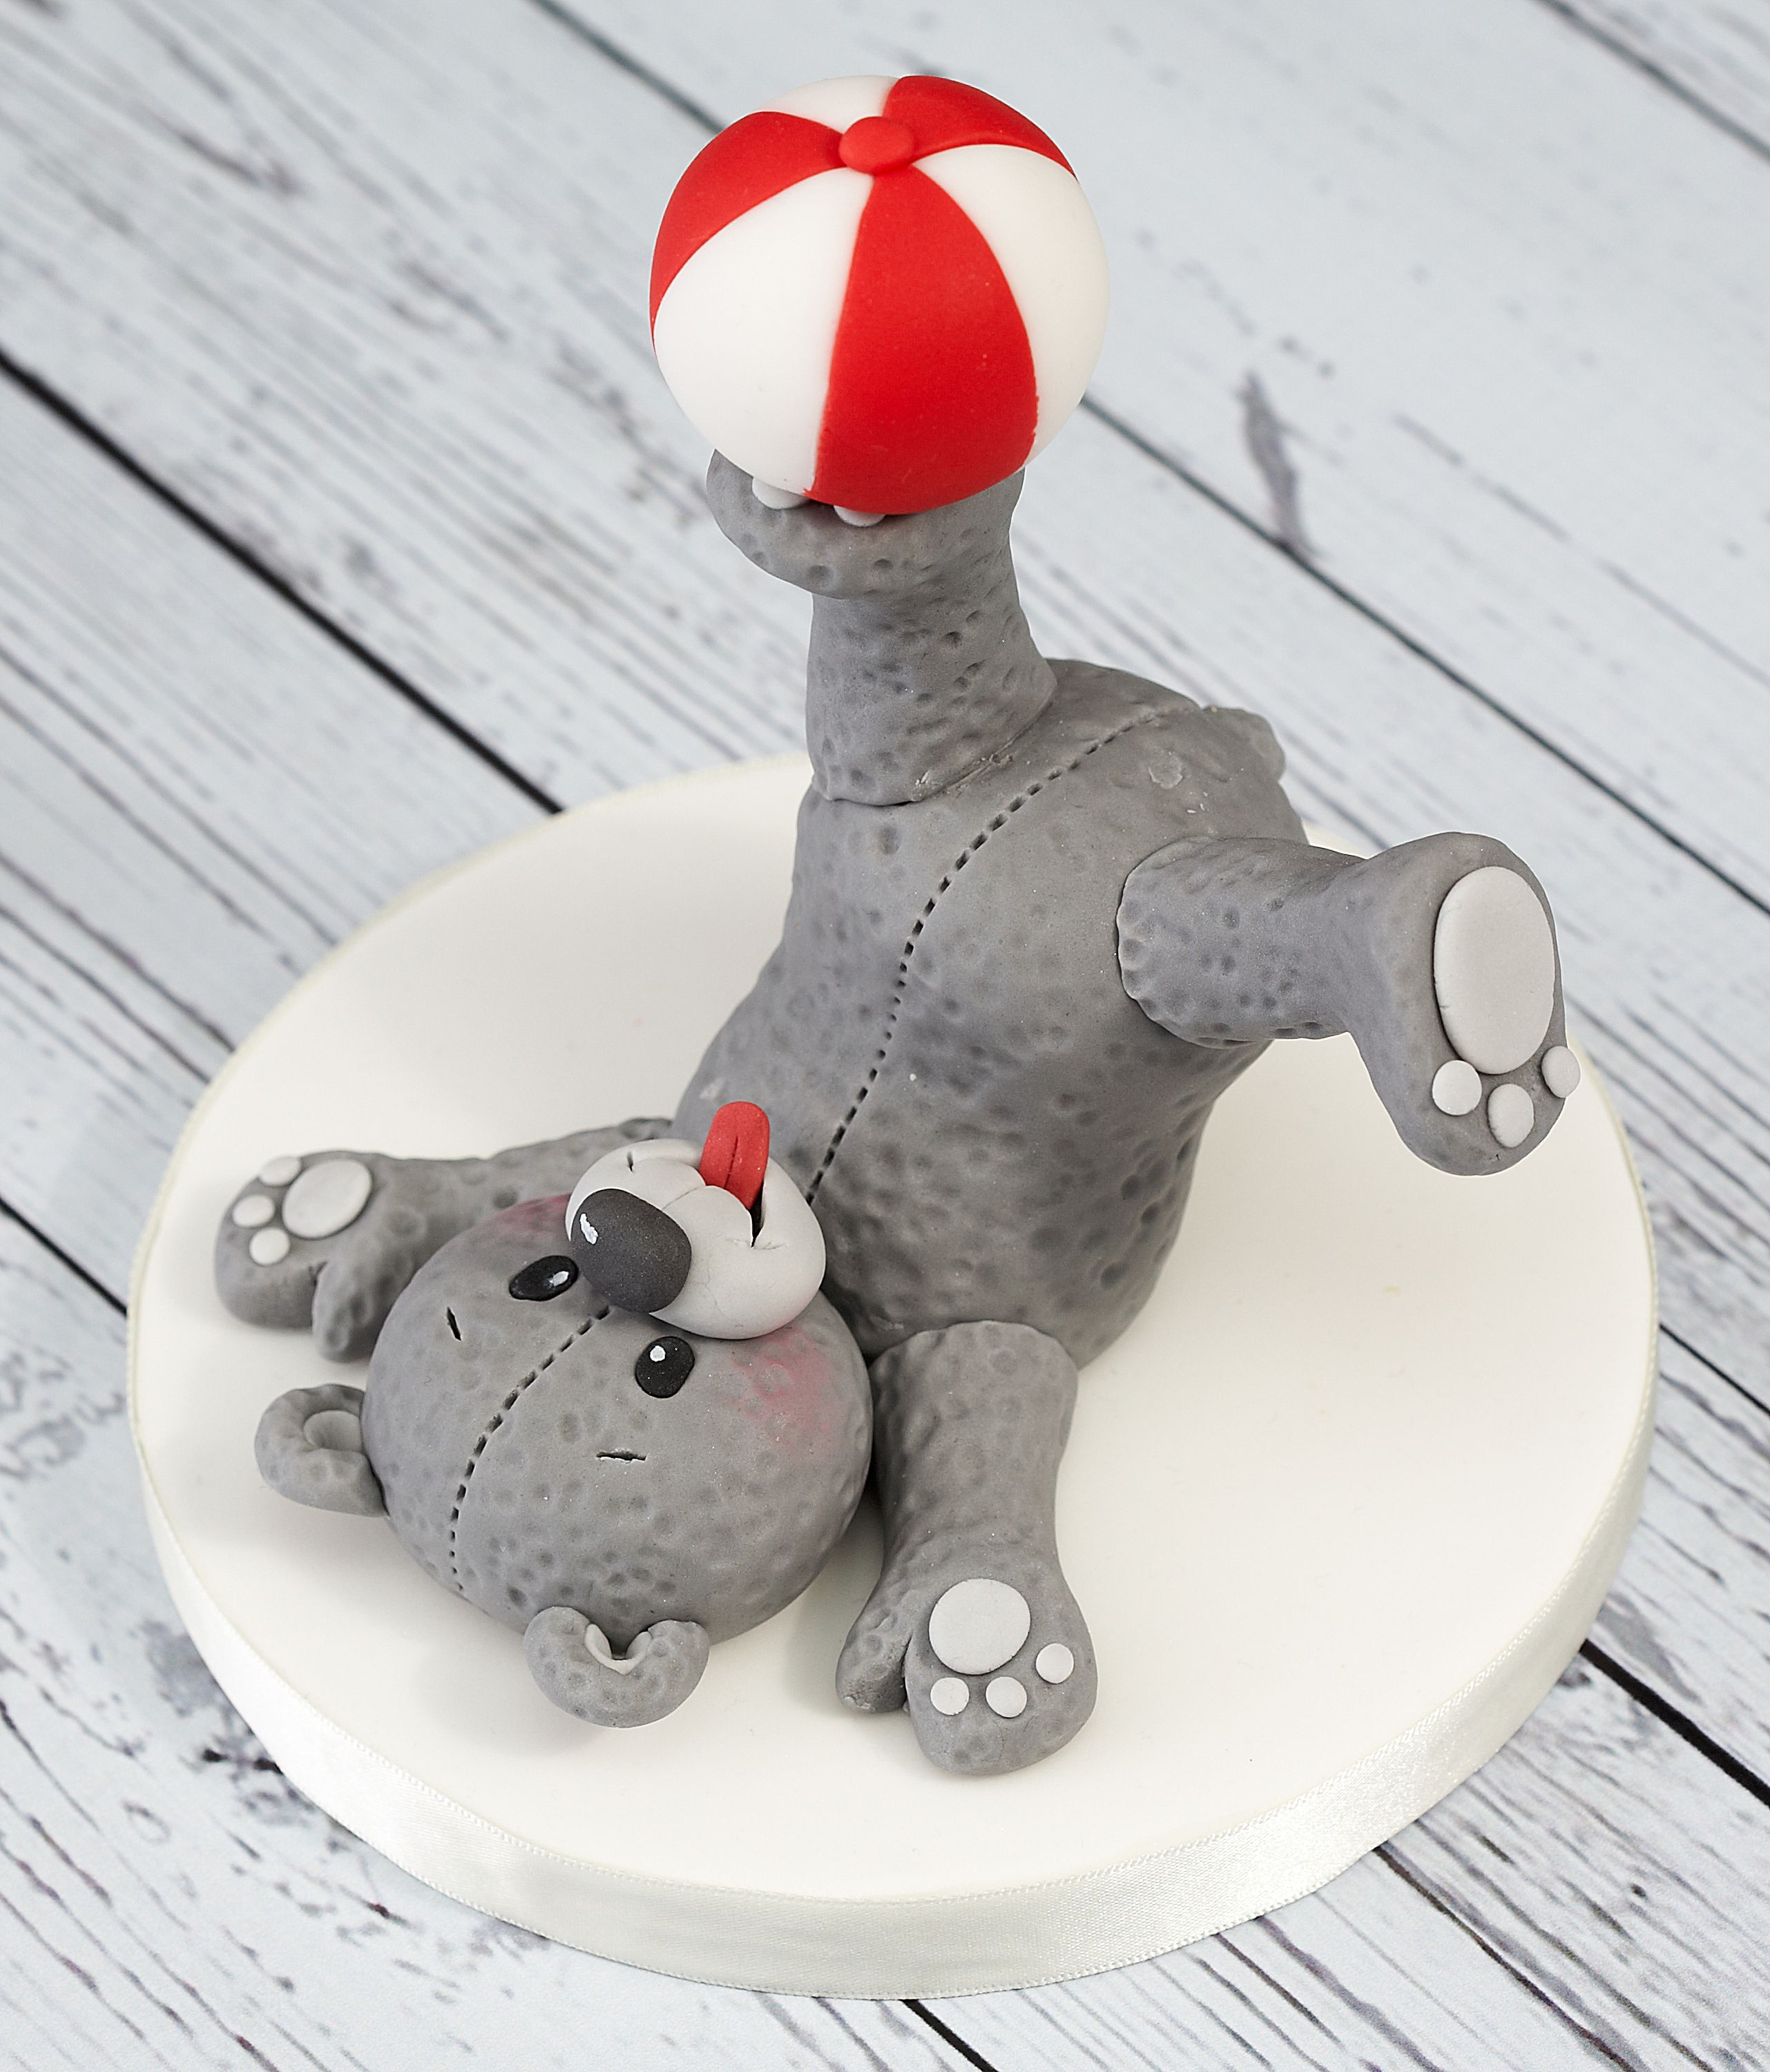 Cake Decorating Ready Made Icing : Teddy bears make great cake toppers. This one s fur has ...